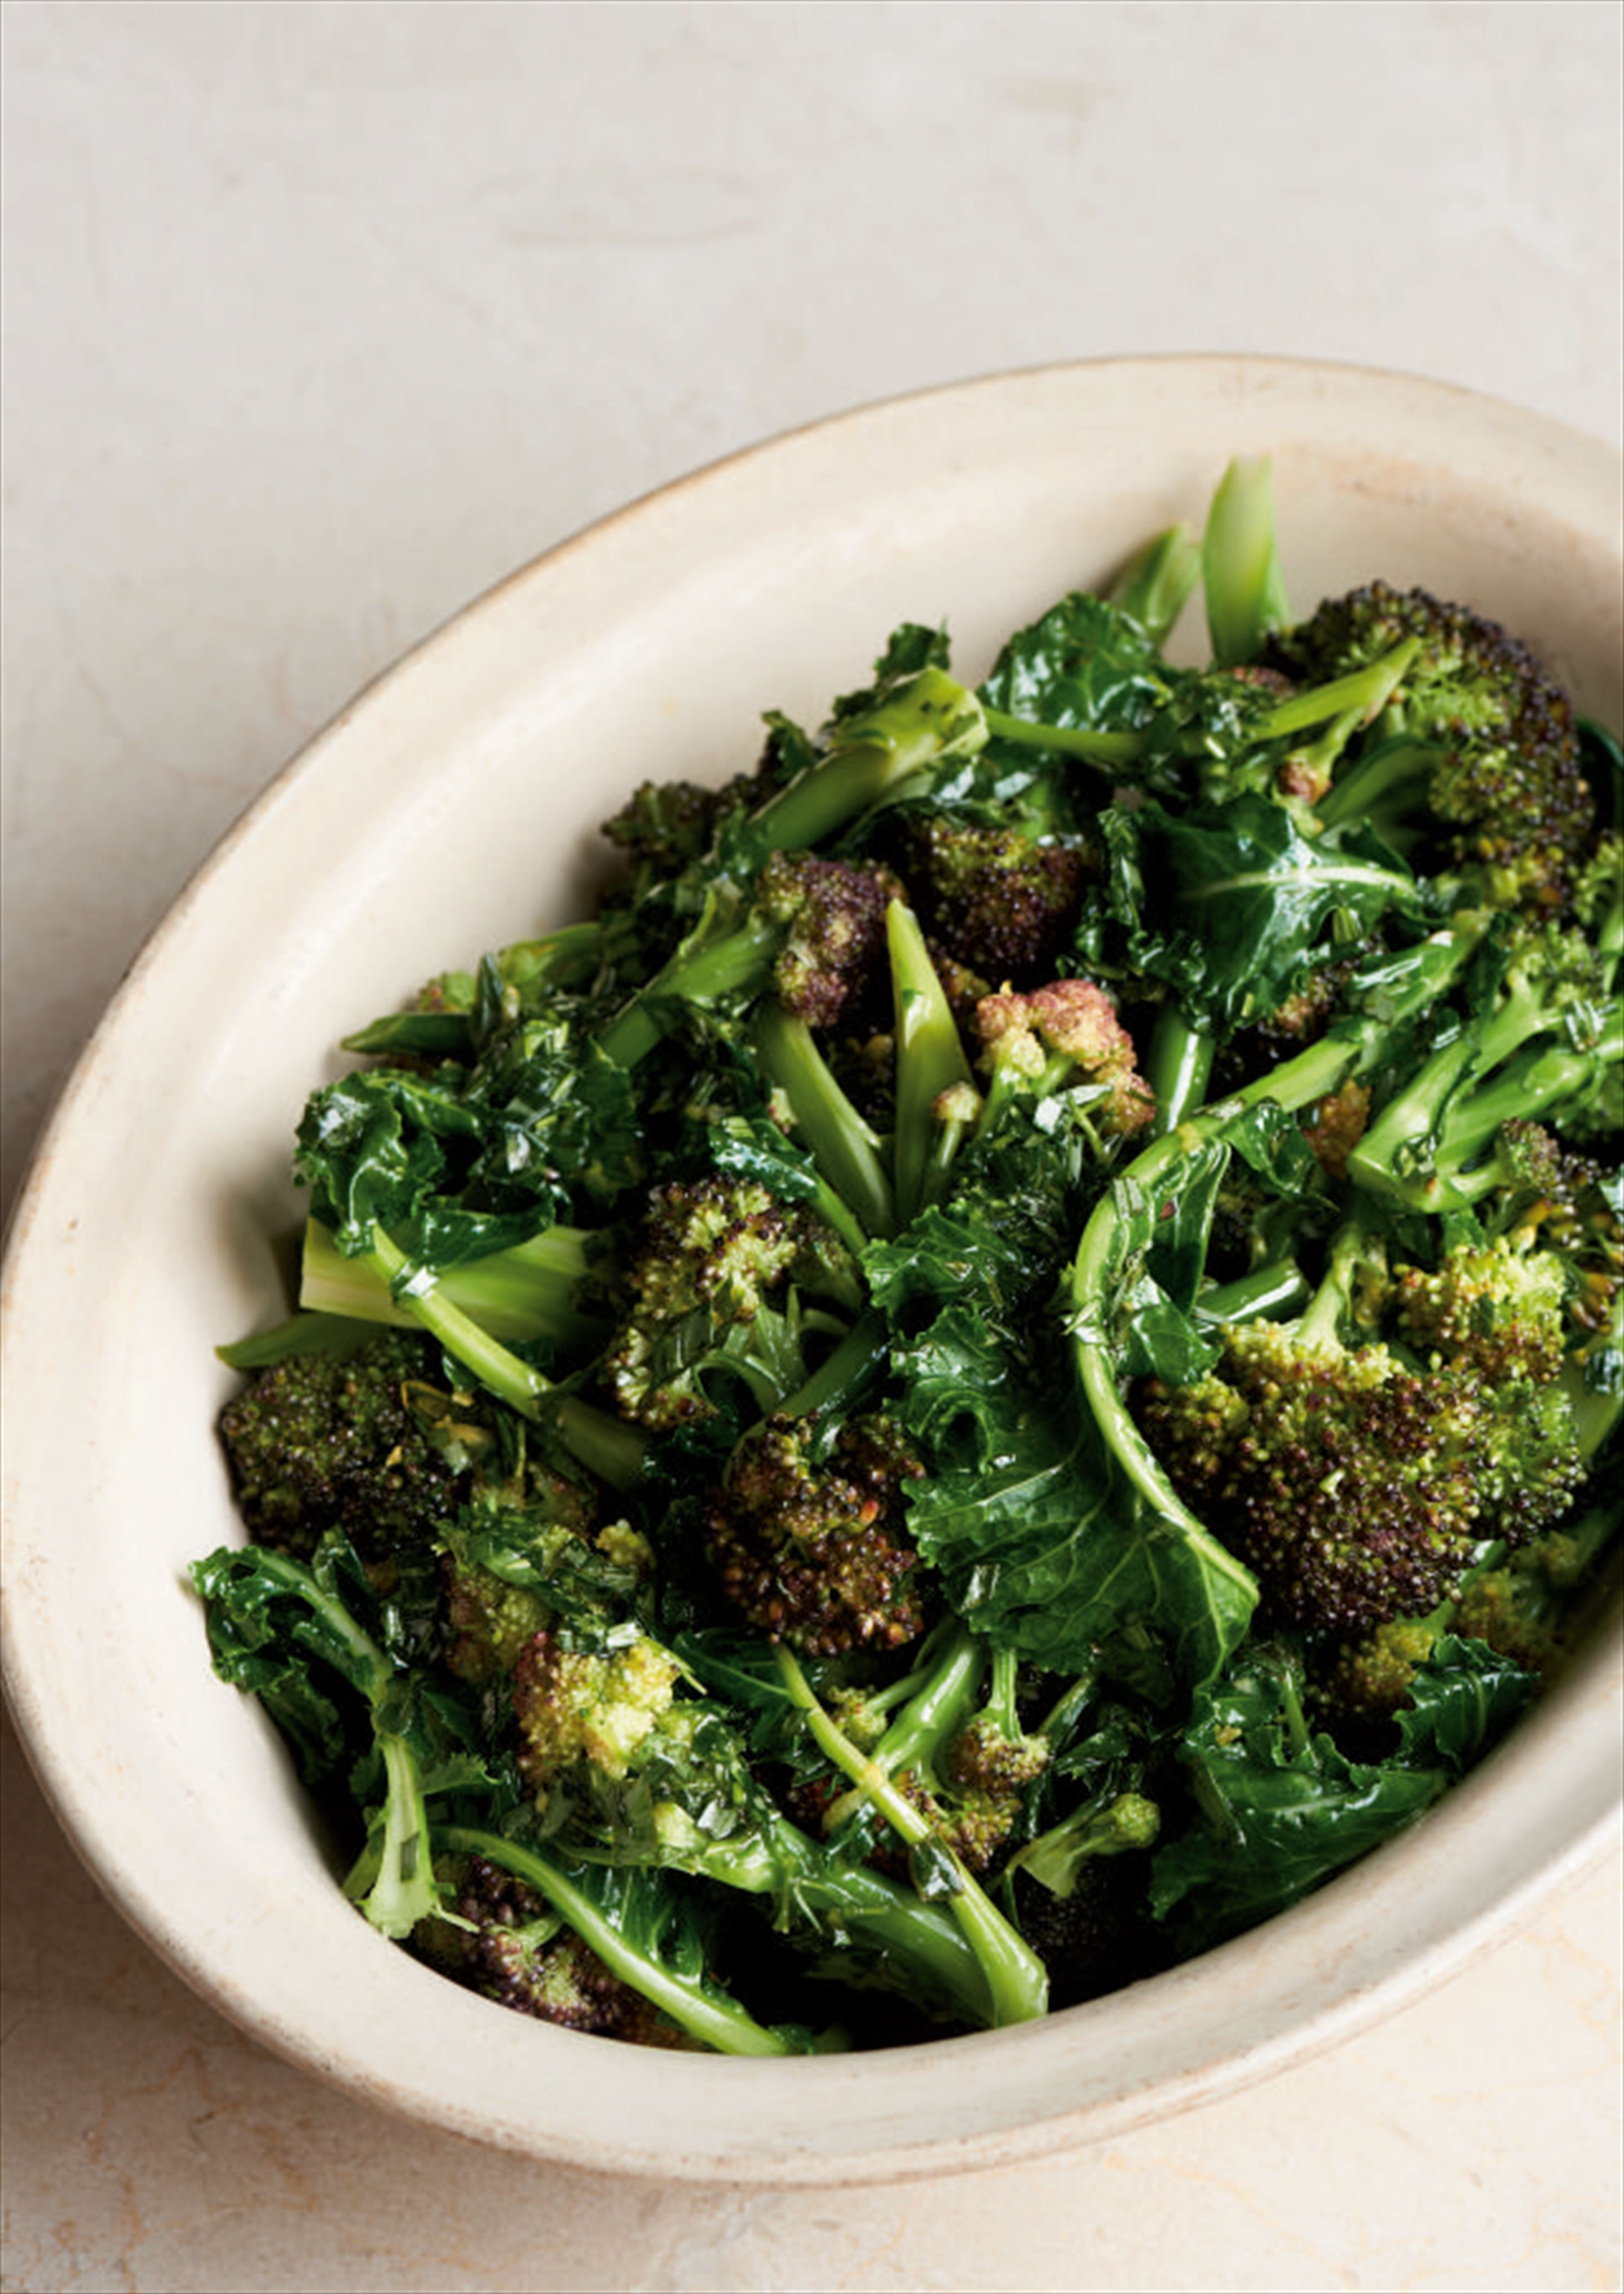 Purple sprouting broccoli with tarragon